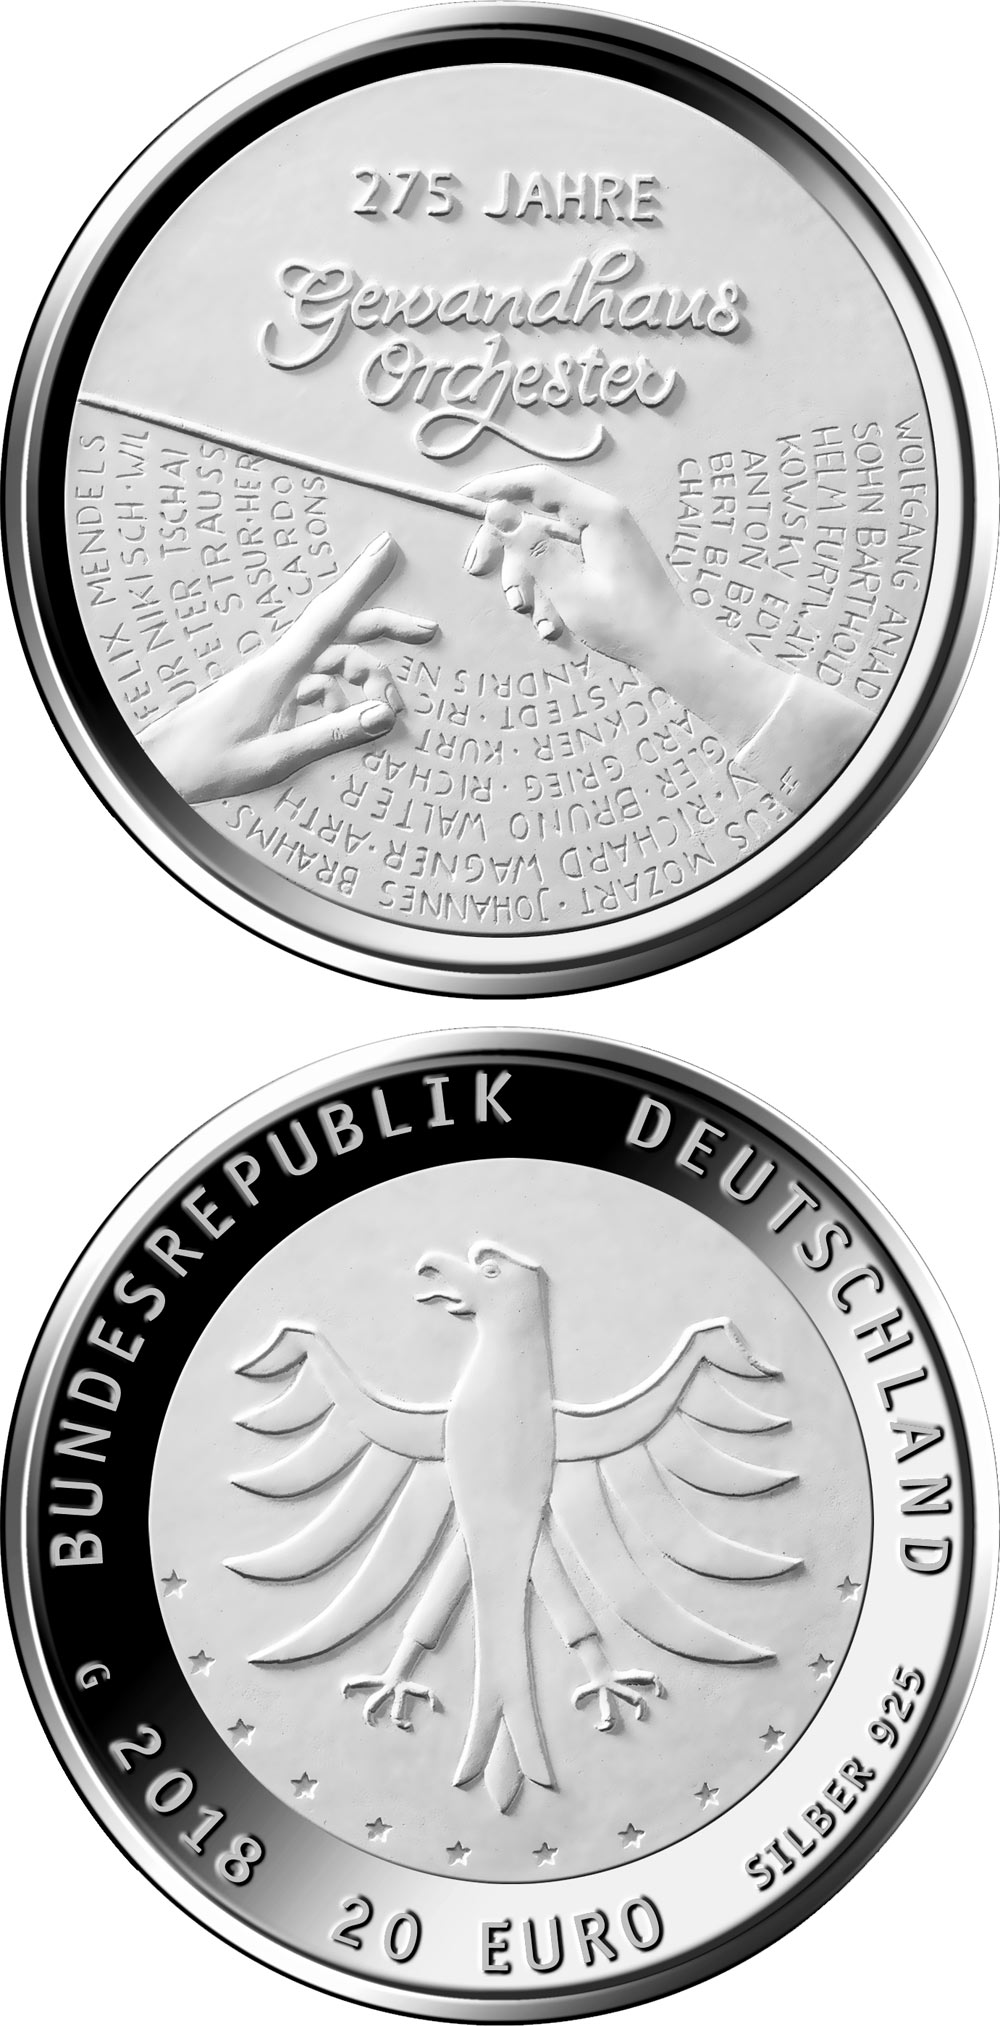 Image of 20 euro coin - 275 Jahre Gewandhausorchester  | Germany 2018.  The Silver coin is of Proof, BU quality.